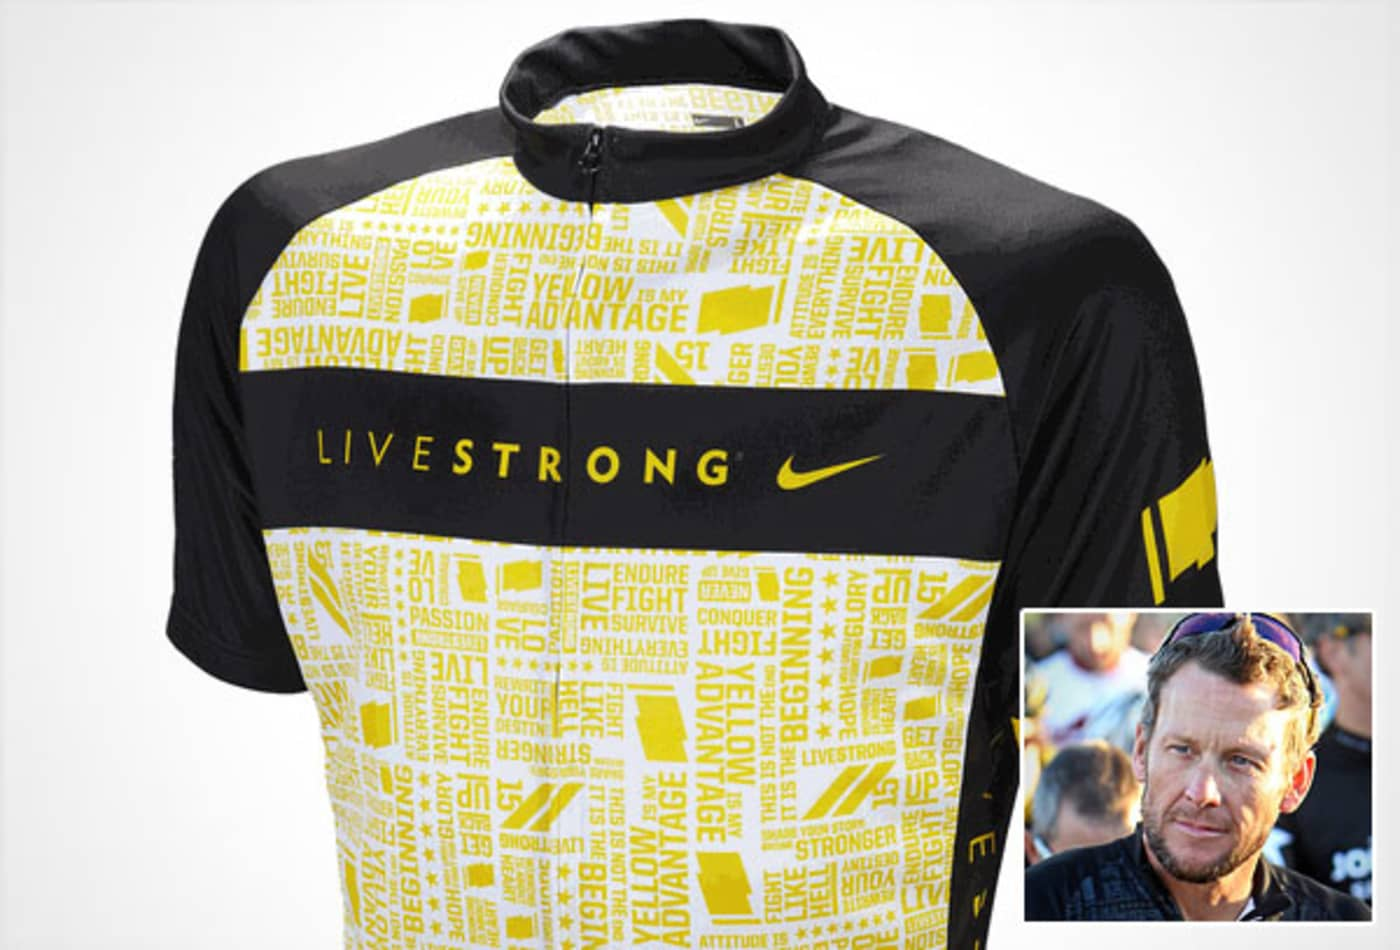 Lance-Armstrong-Athlete-Clothing-Lines-CNBC.jpg